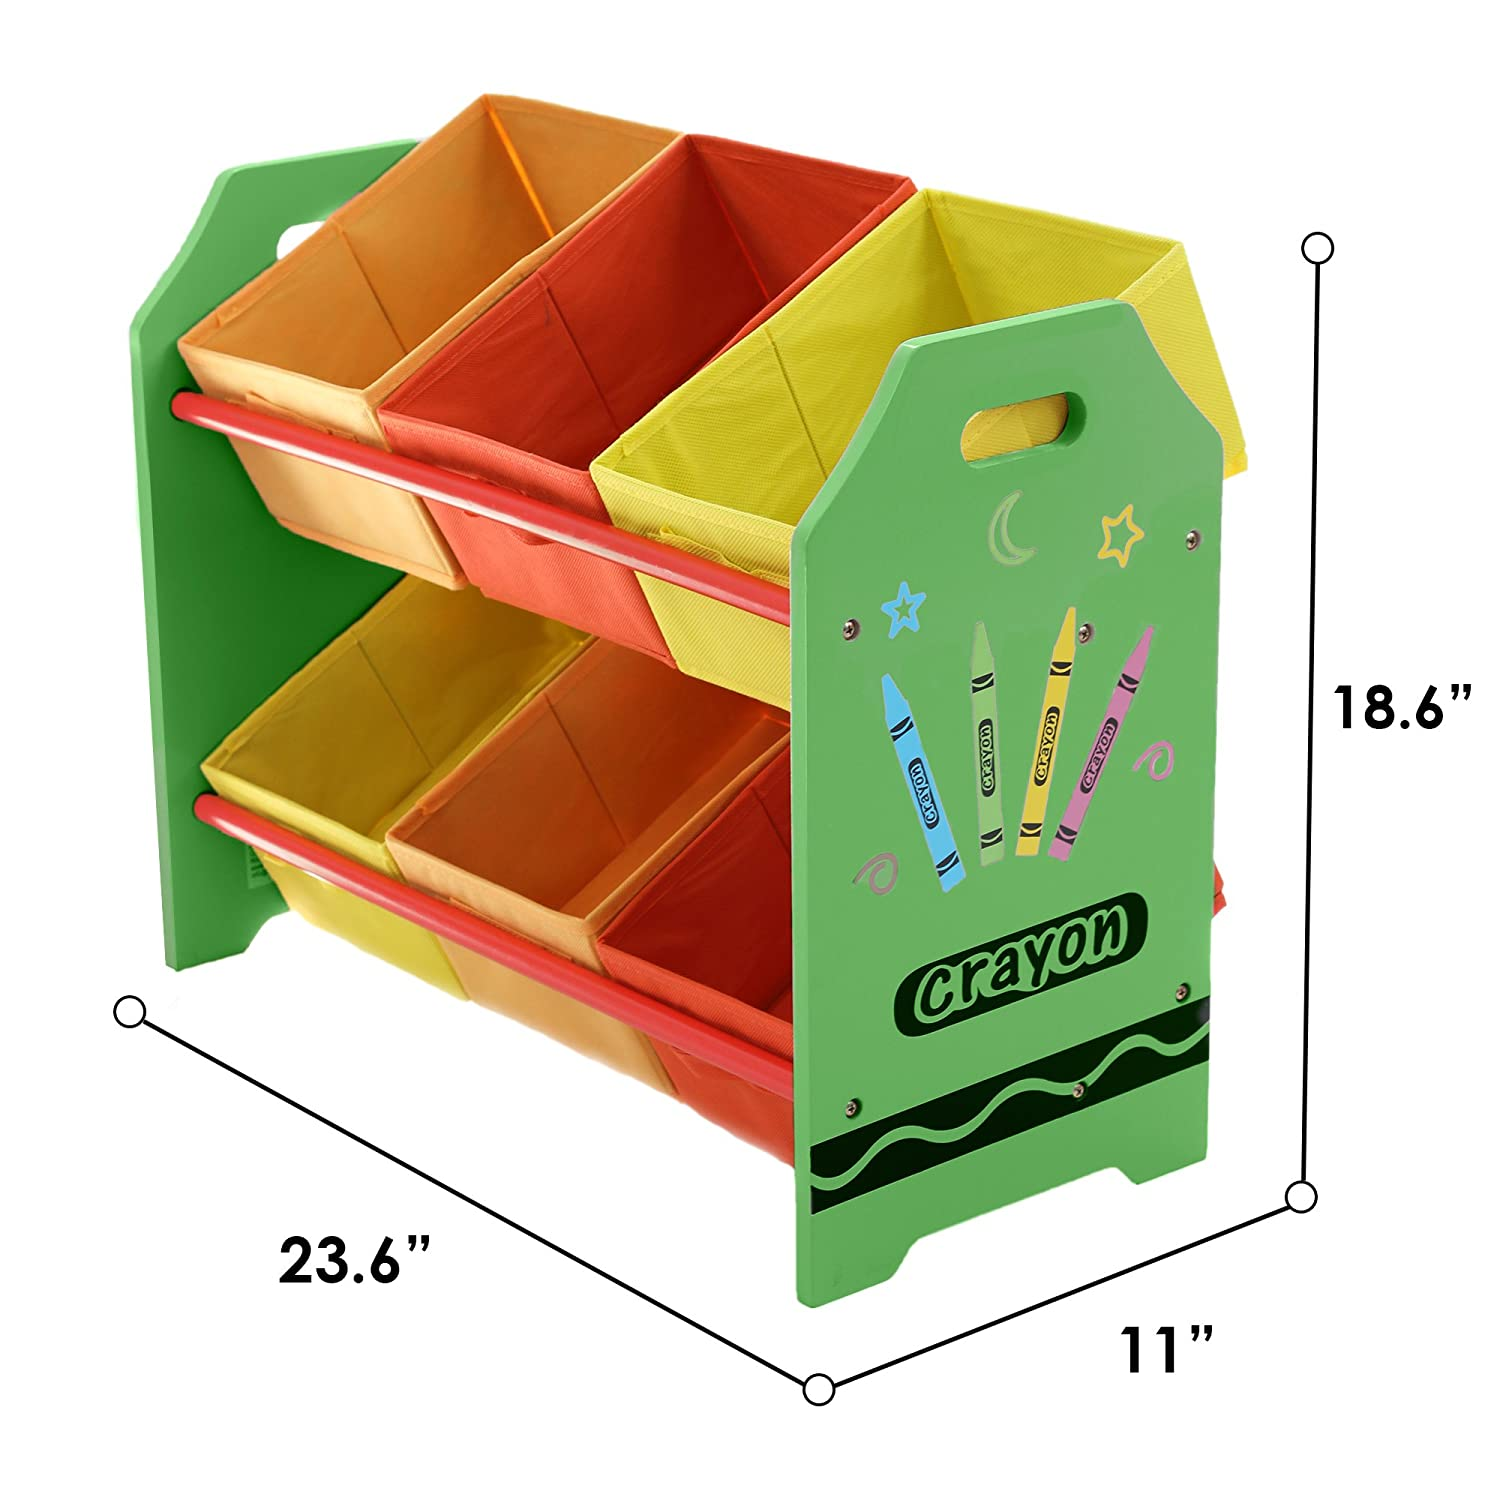 Bebe Style Premium Toddler Furniture Wooden Toy Storage Organizer Shelf with 6 Buns Crayon Theme Easy Assembly